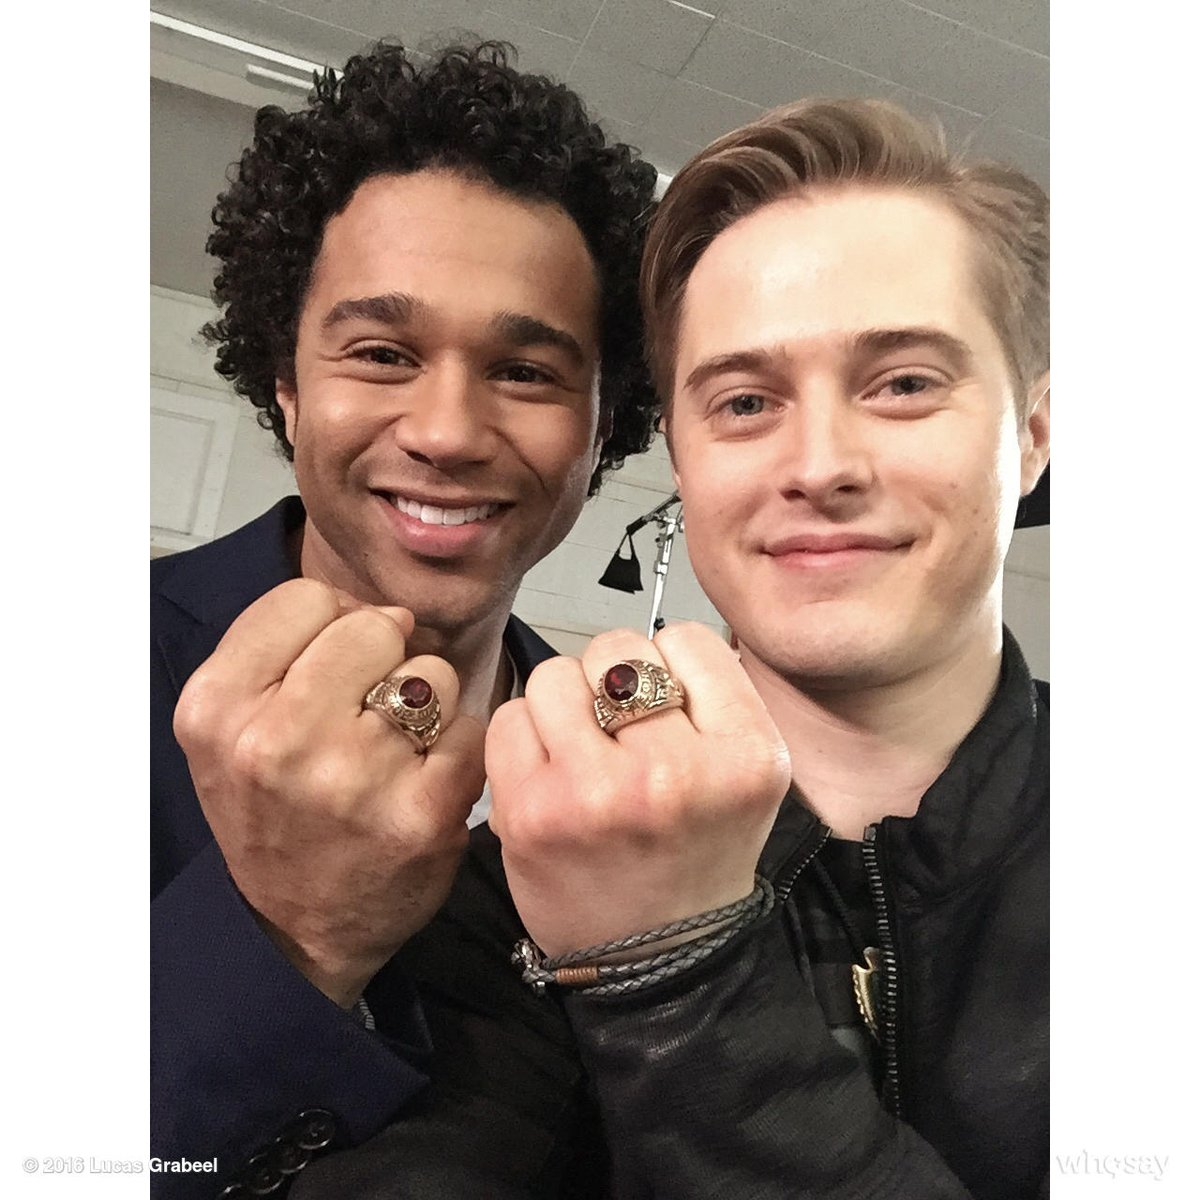 Wearing our #HSM class rings to celebrate the 10th anniversary. @corbinbleu. https://t.co/Je6roHkobz